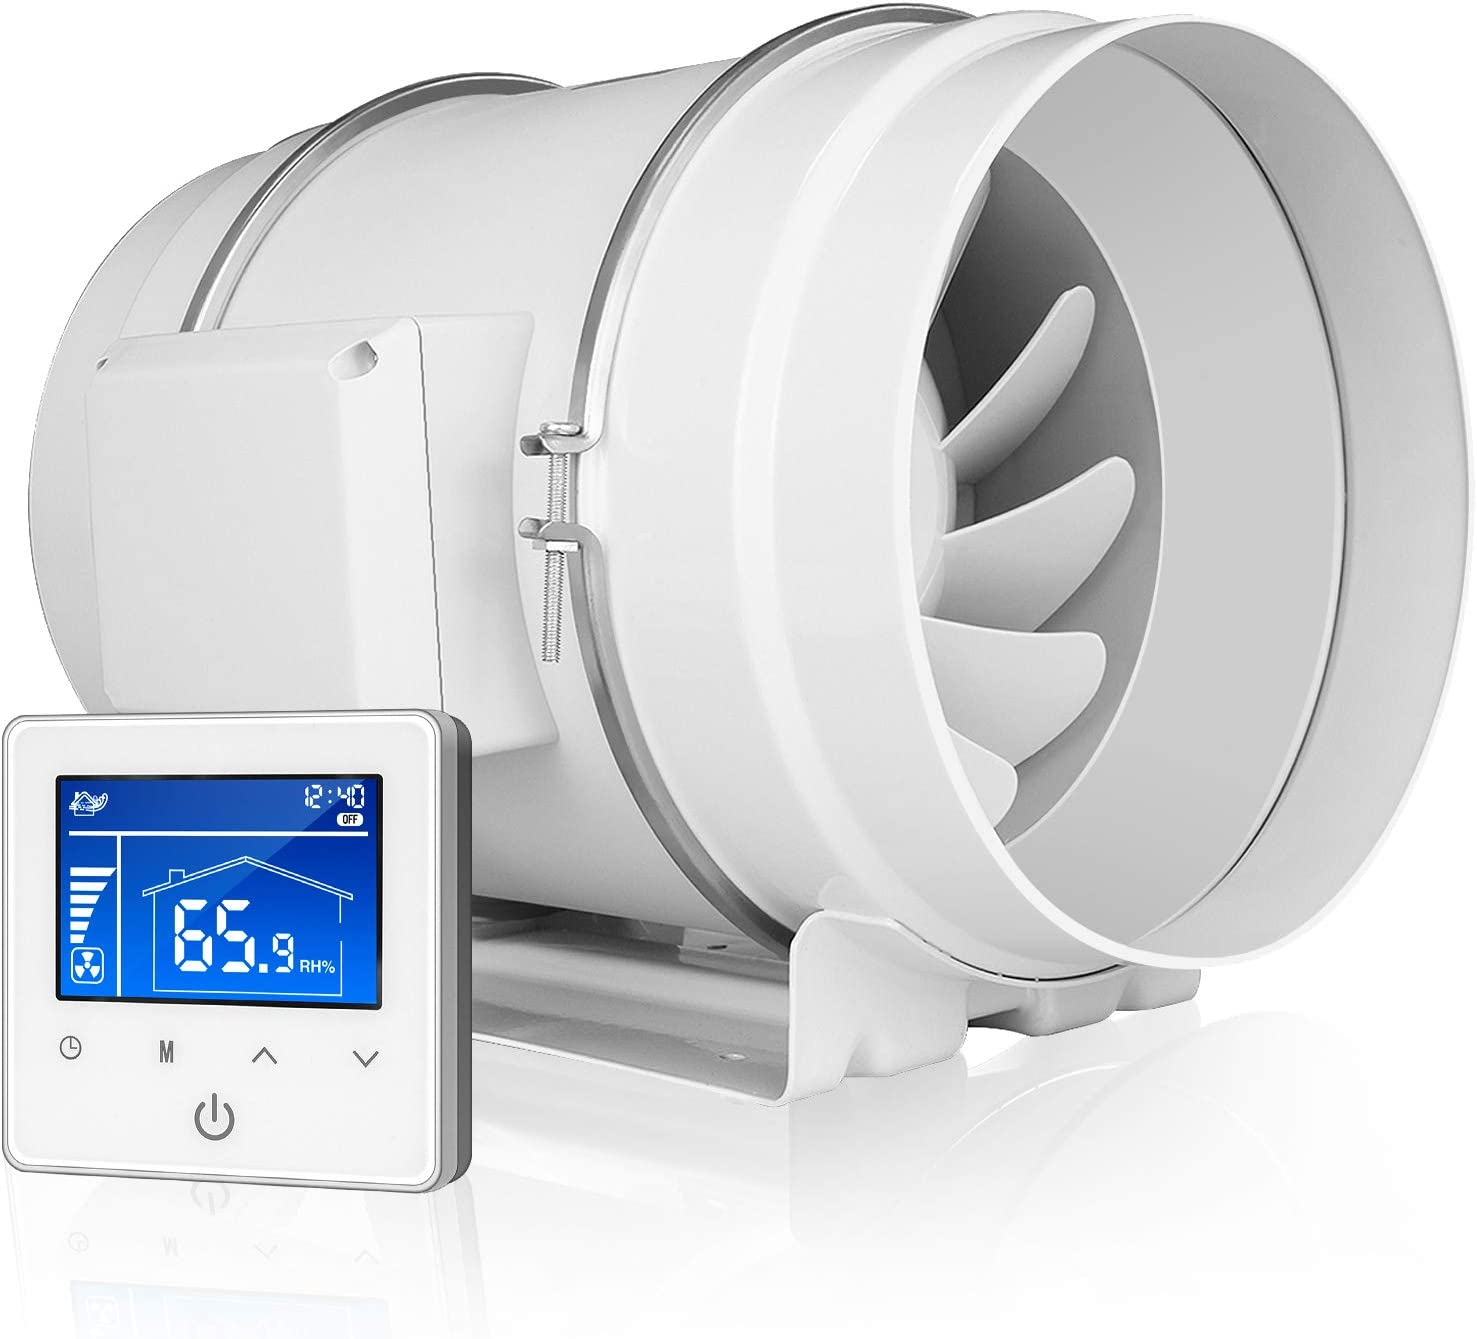 """iPower GLFANXINLINEPRO8 8 Inch 750 CFM Inline Duct Temperature Humidity Variable Speed Controller, Quiet HVAC Ventilation Exhaust Blower Fan, 8"""", White"""